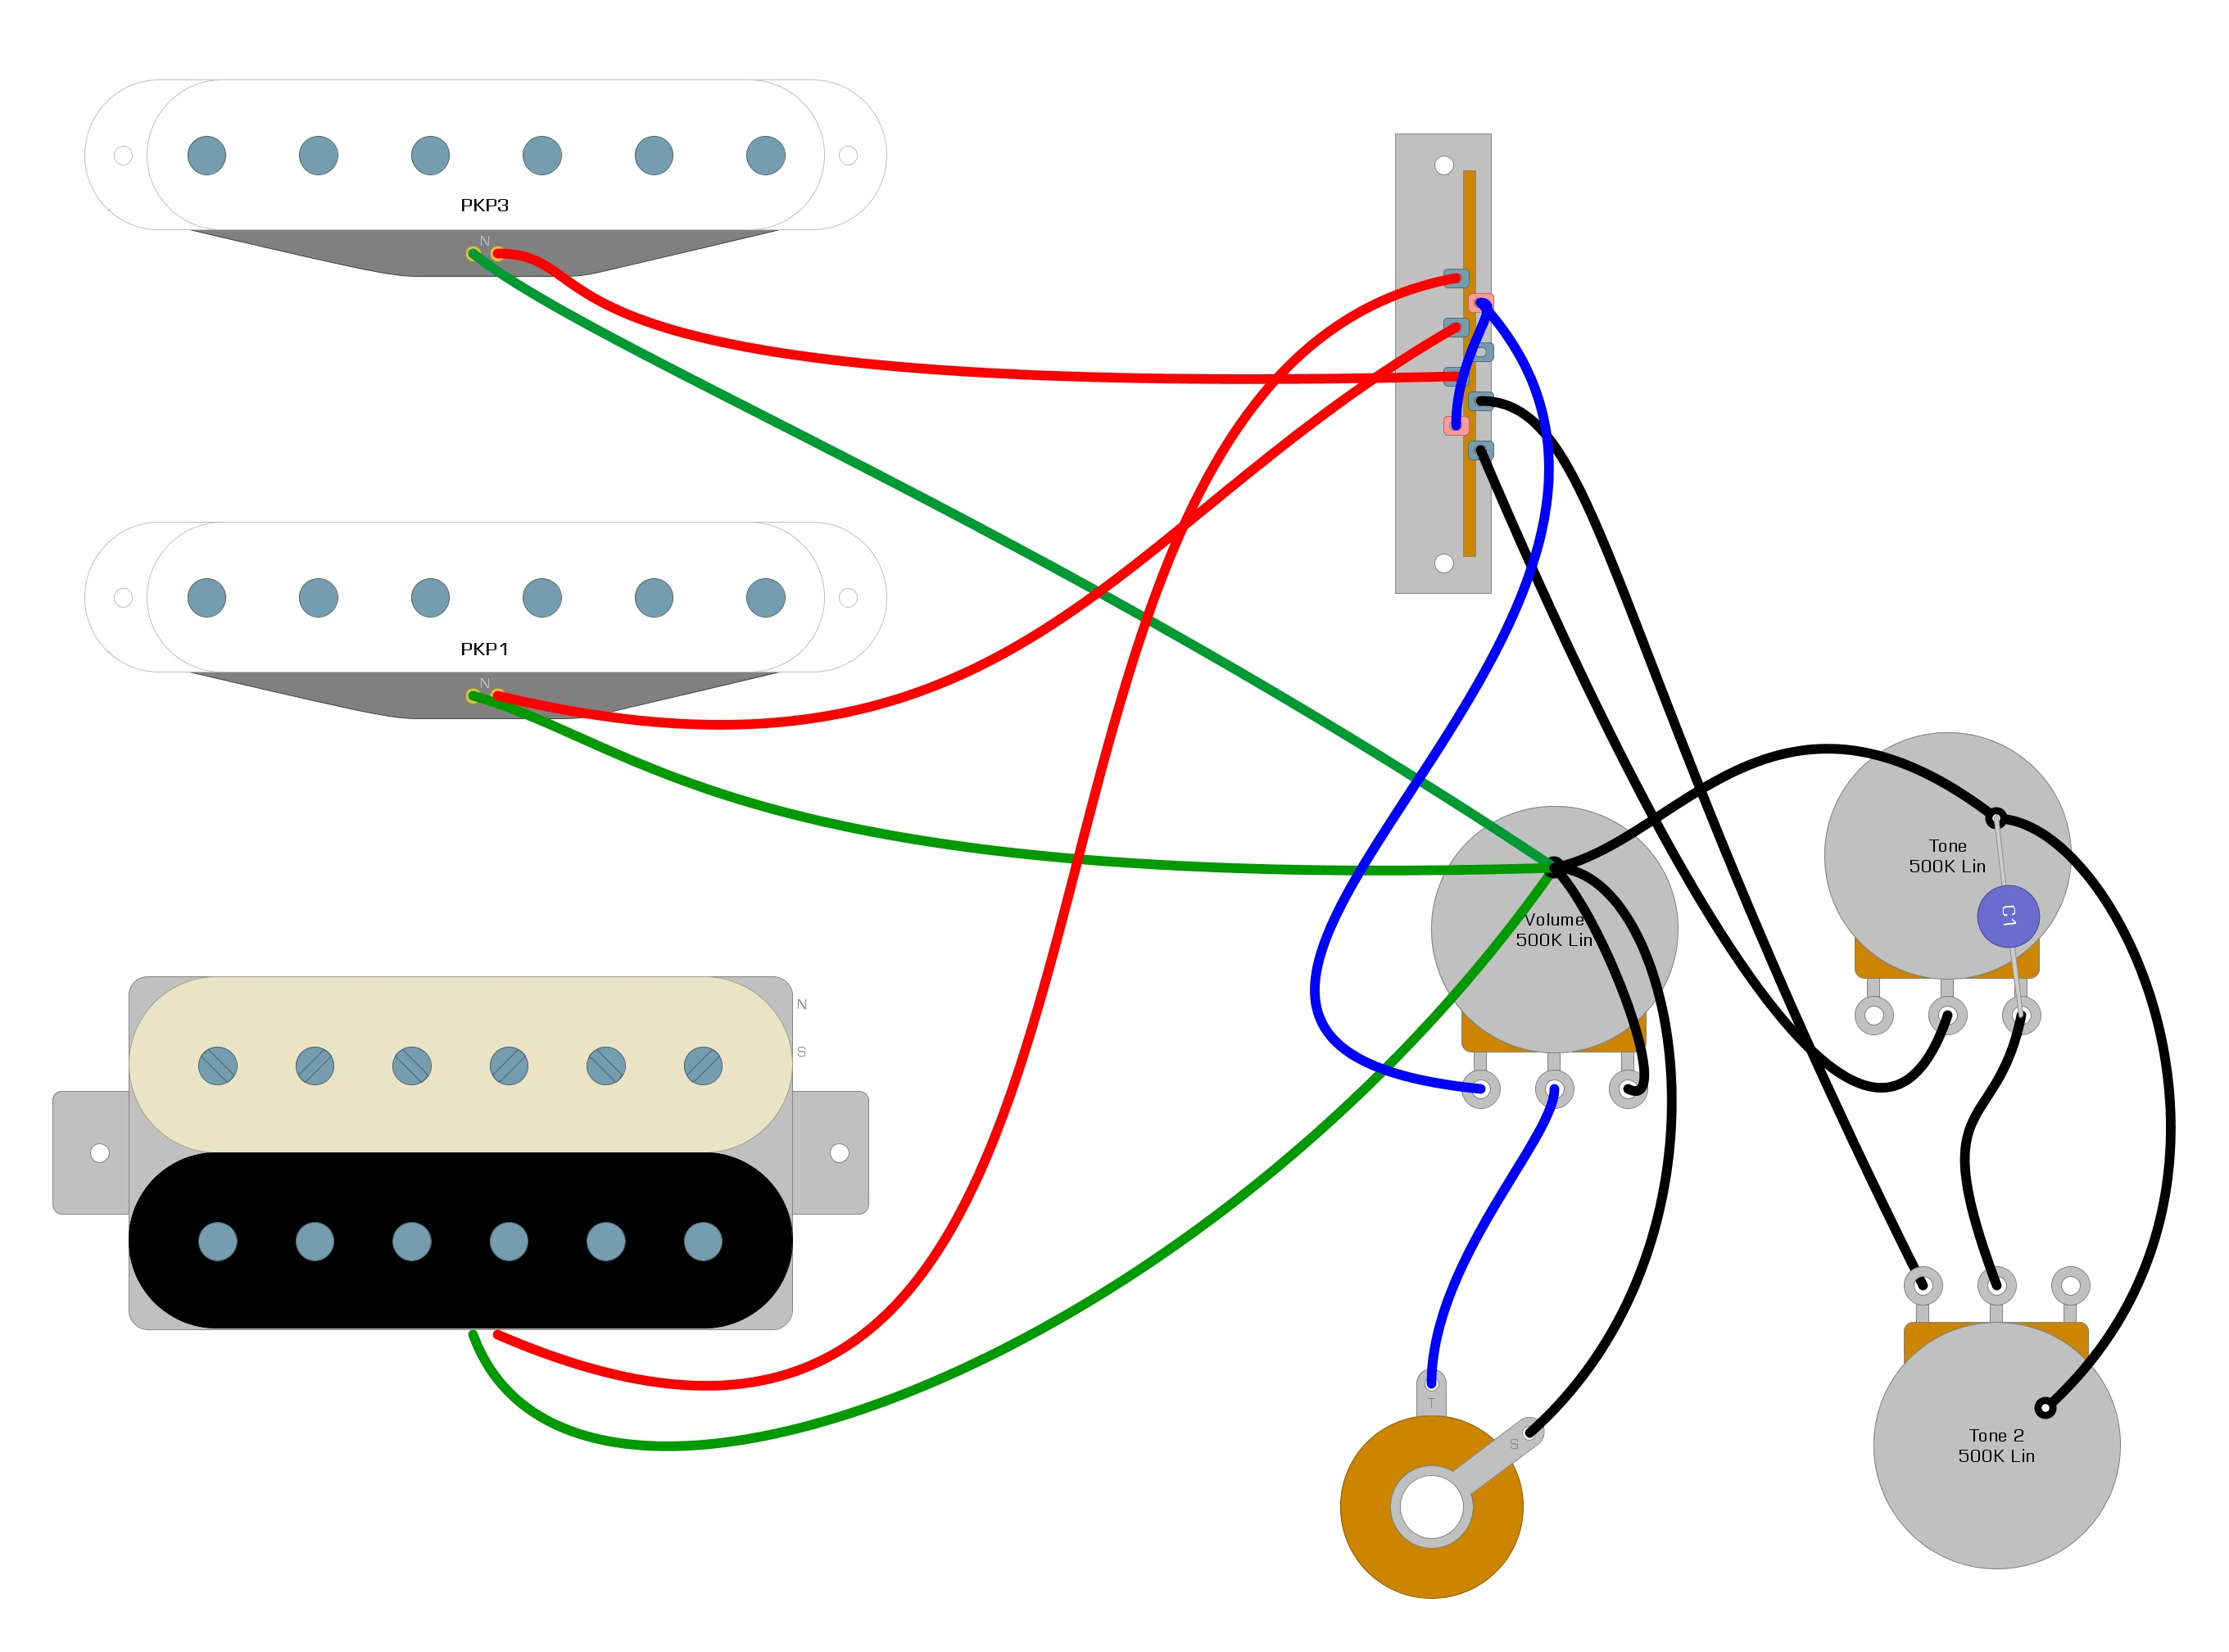 Dimarzio PAF 59 Wiring Diagram – Humbucker Soup | Guitar Wiring Diagrams Dimarzio |  | Humbucker Soup